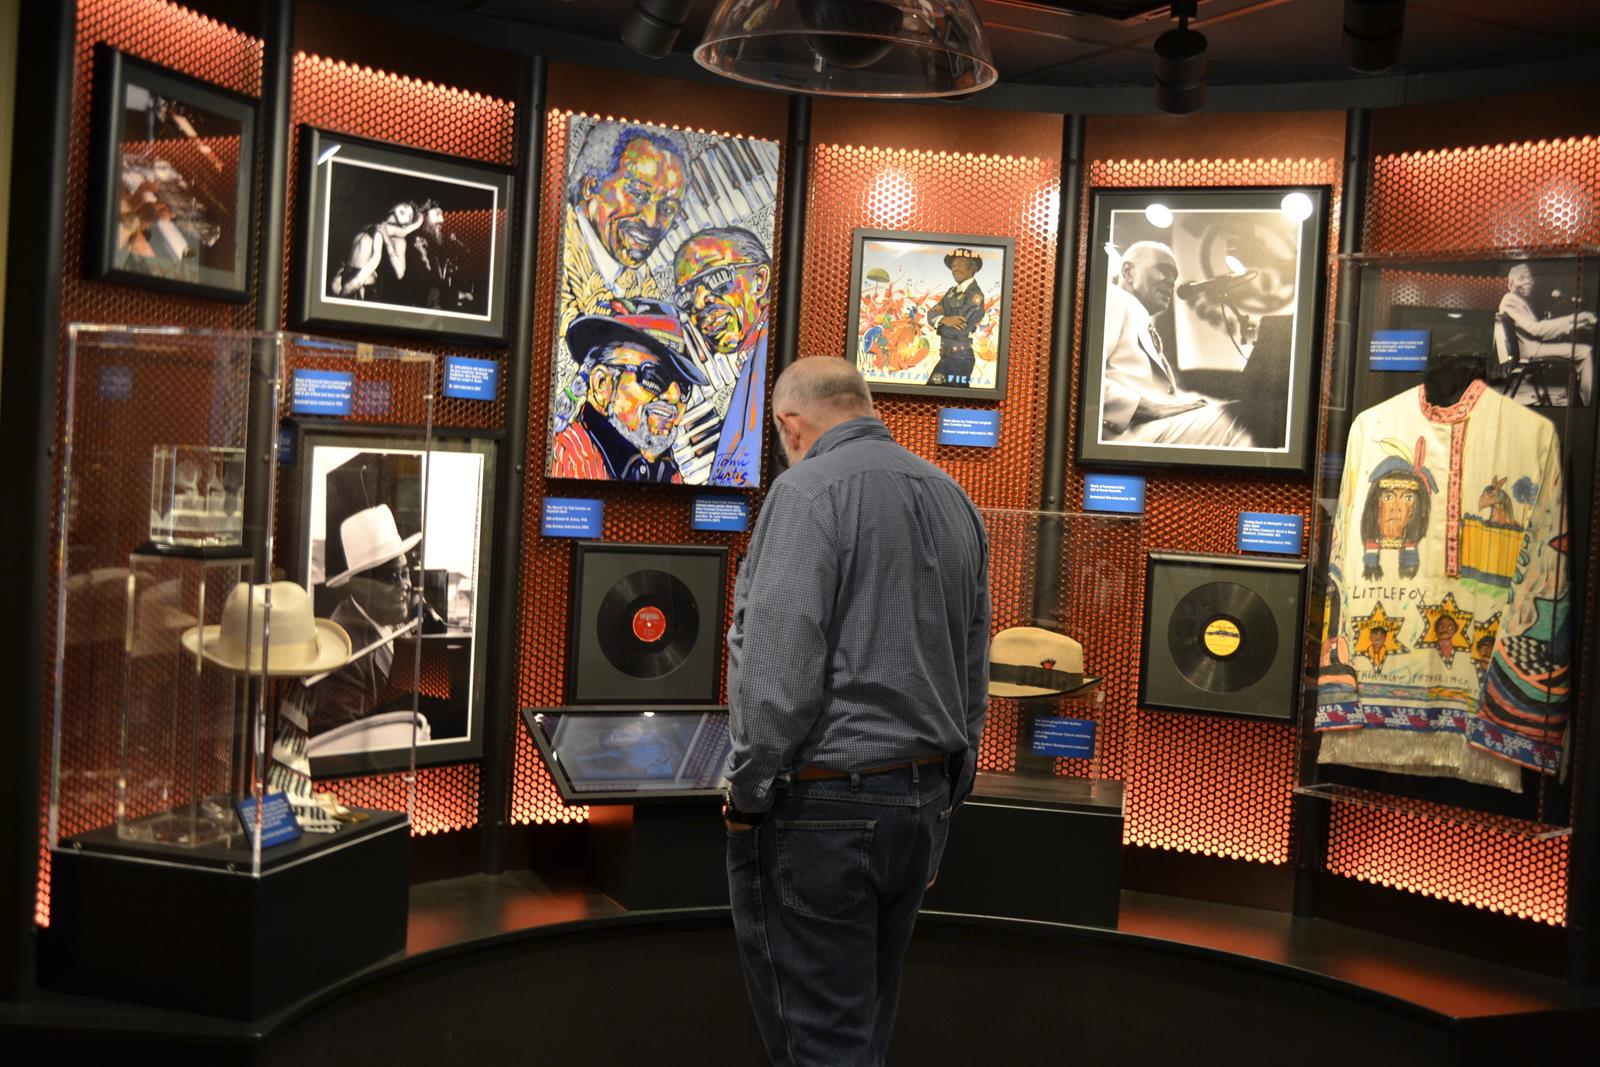 Blues Hall of Fame depicts history of popular blues singers and blues culture.